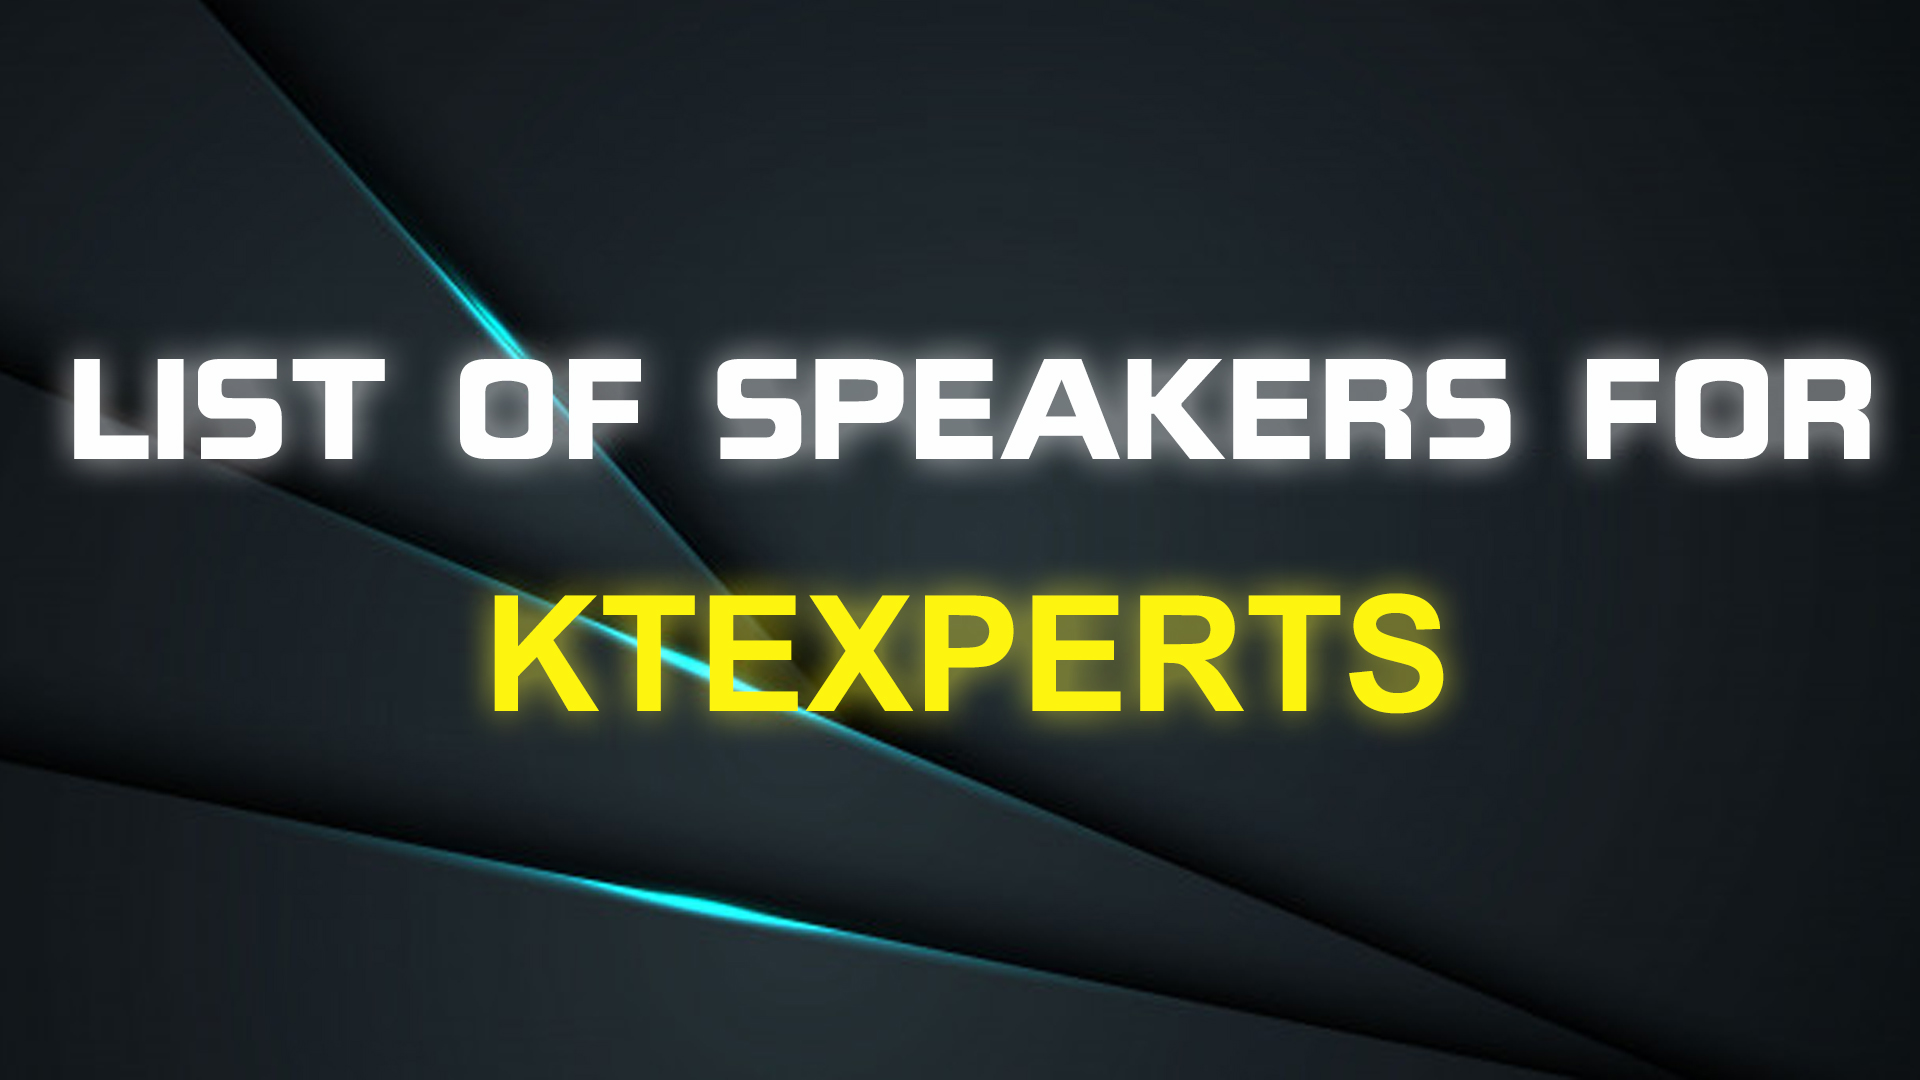 List of Speakers for KTEXPERTS